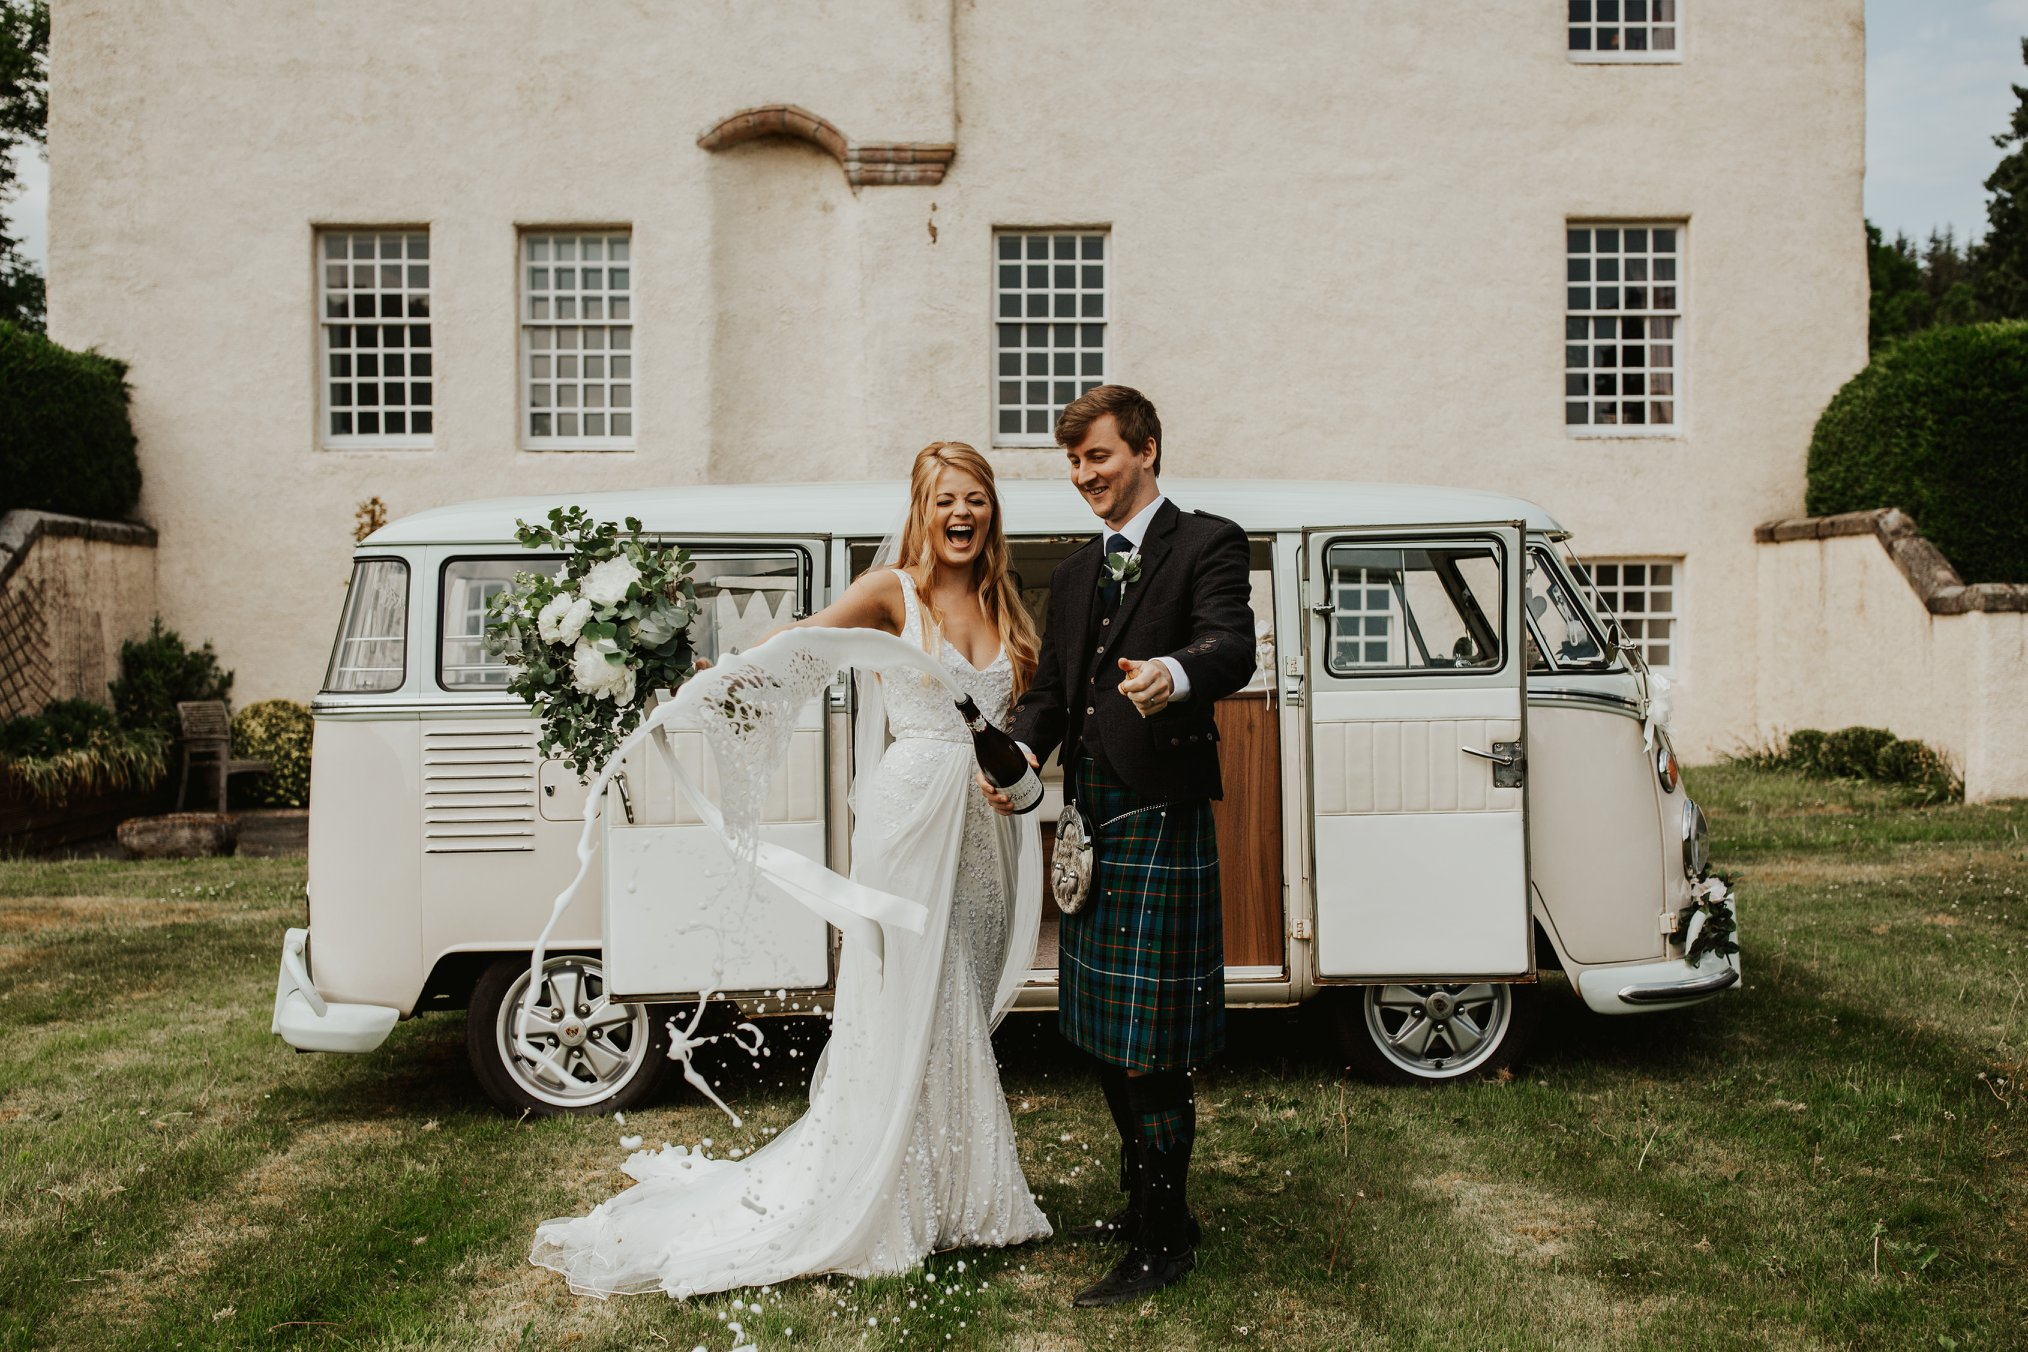 Wedding Vehicle Classic Campers Scotland